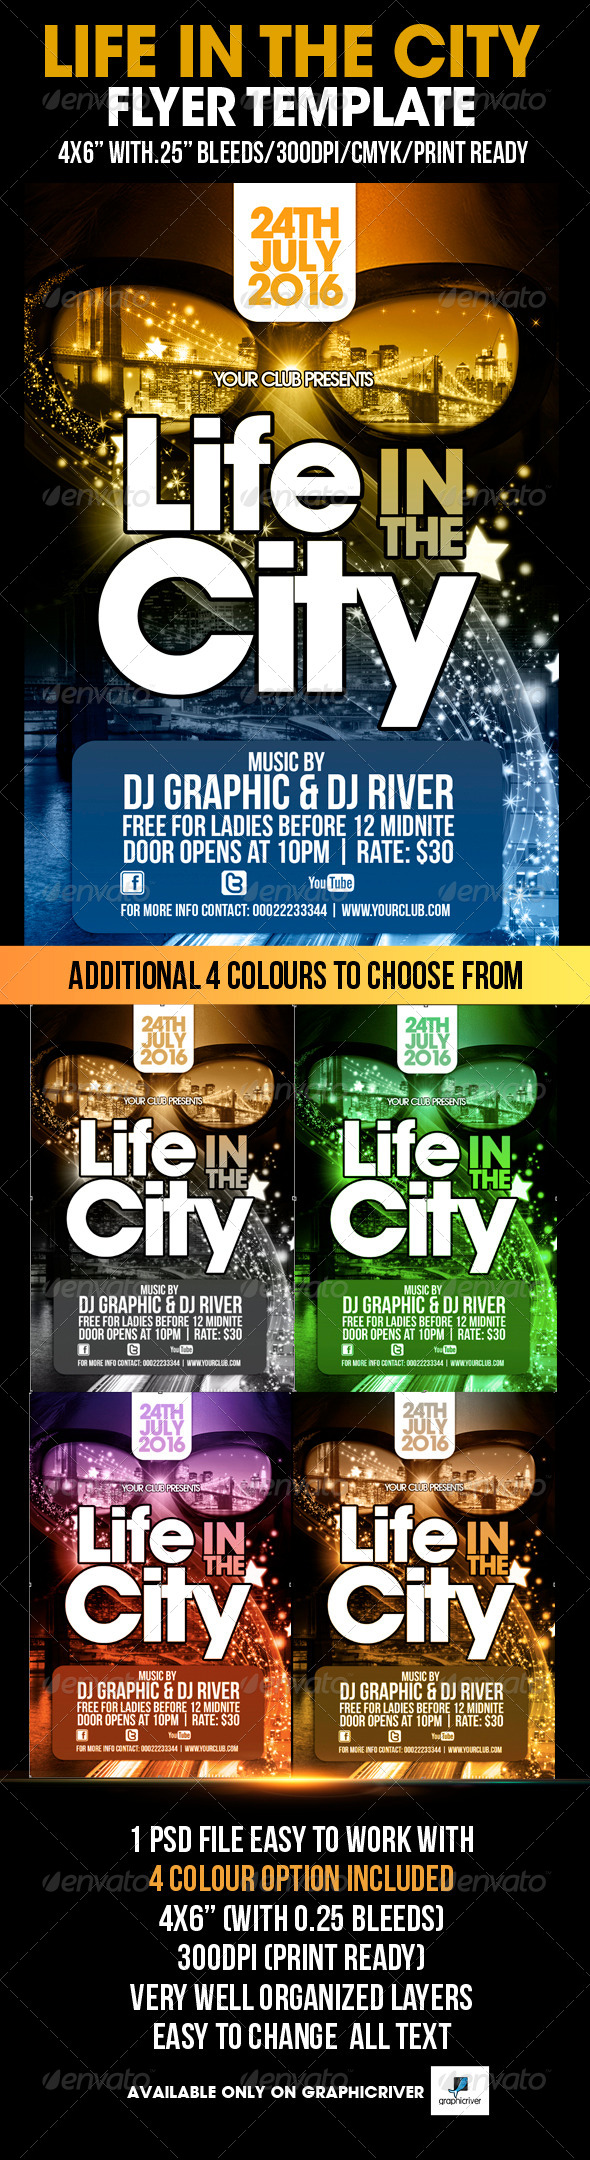 Life In The City Flyer Template - Flyers Print Templates